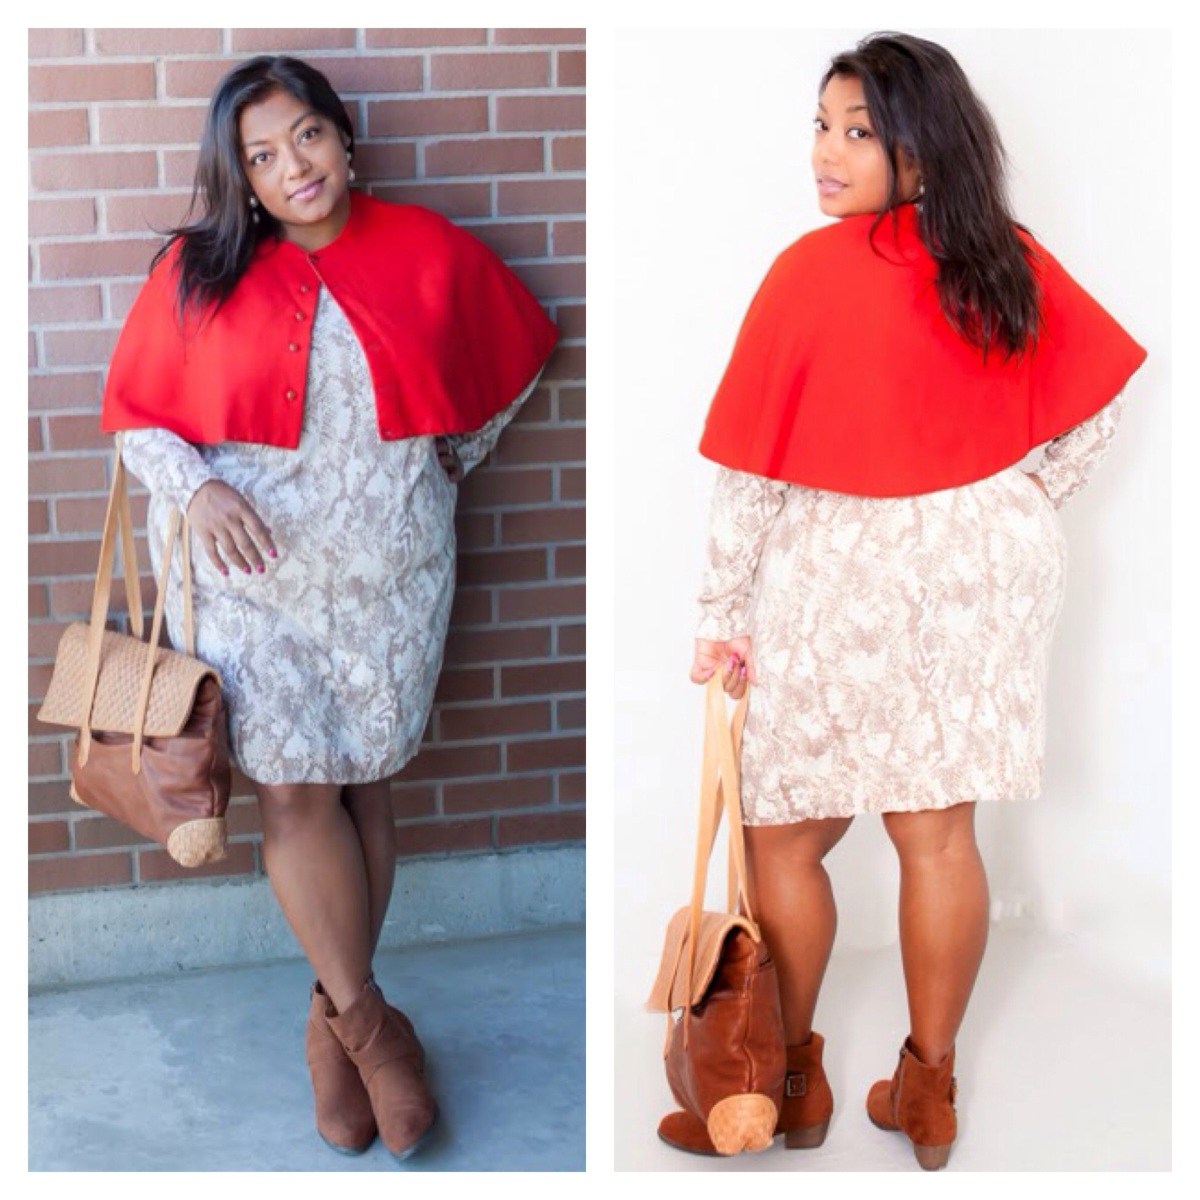 Fall Double Feature: SweaterGlamour